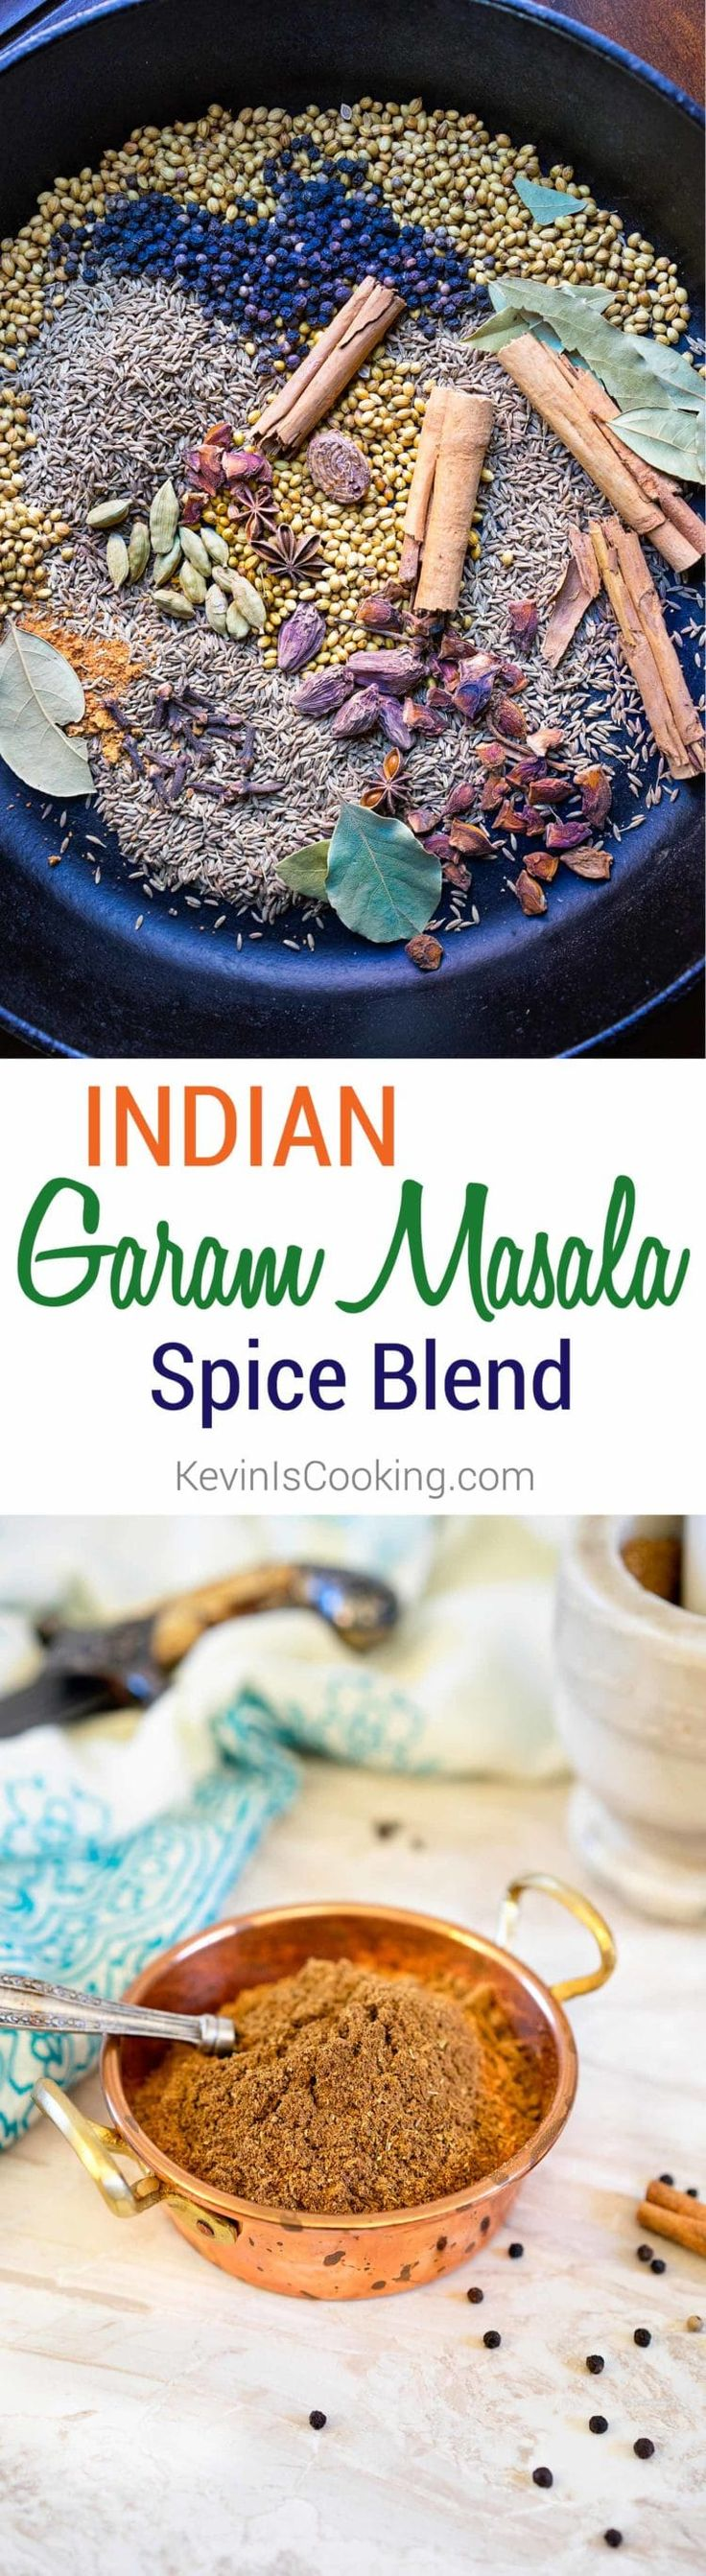 Indian Garam Masala is an exotic blend of warm spices. I show you how it can be made with most pantry items or purchased from bin markets and spice shops. via @keviniscookin